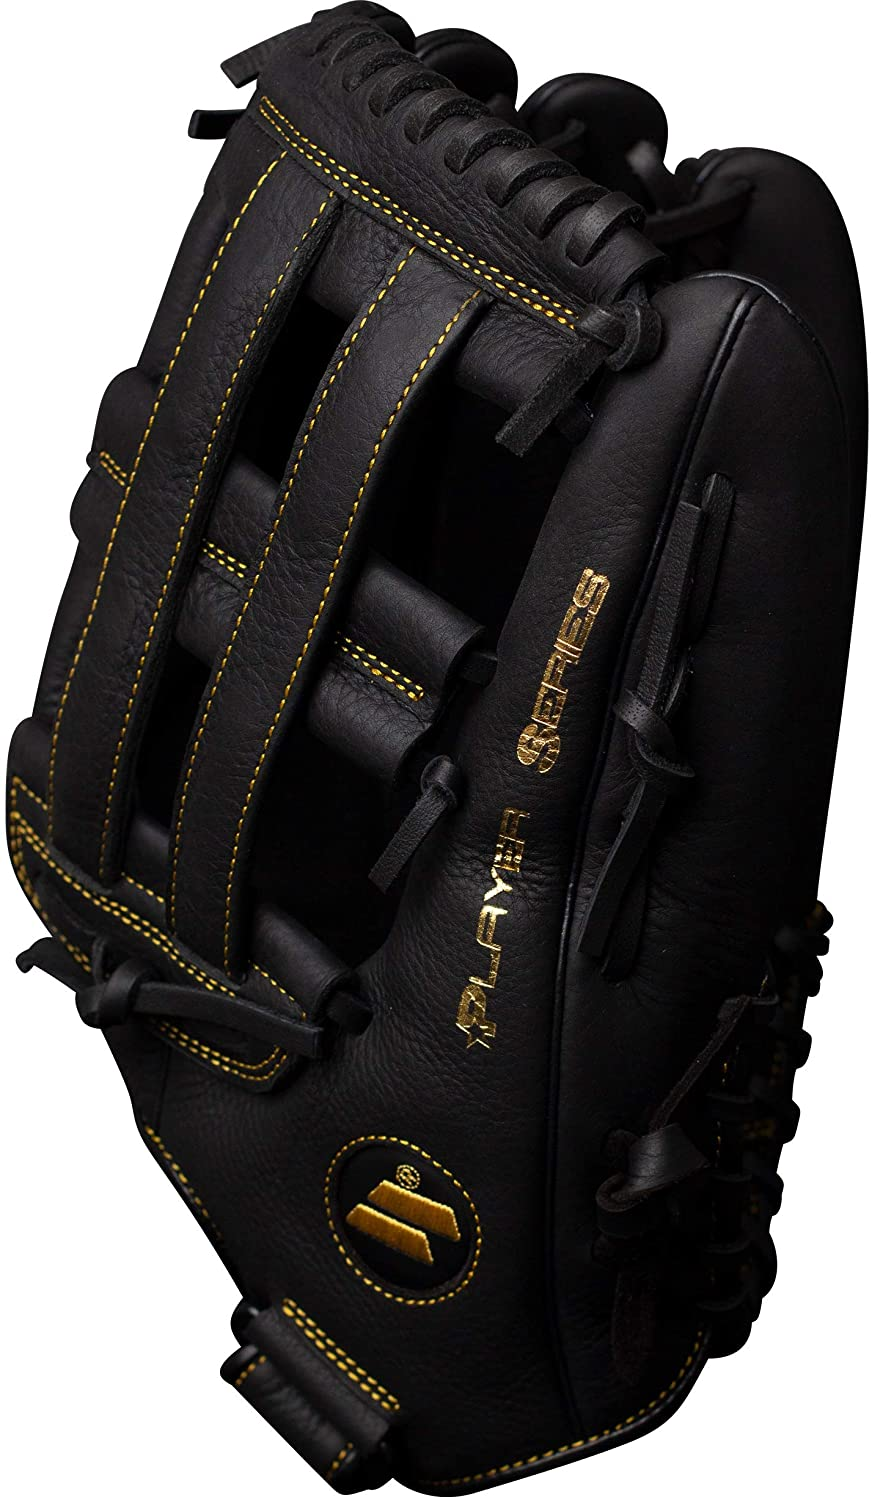 worth-player-series-15-inch-h-web-slowpitch-softball-glove-right-hand-throw WPL150-PH-RightHandThrow Worth 658925043307 Player series from Worth is a Slow Pitch softball glove featuring